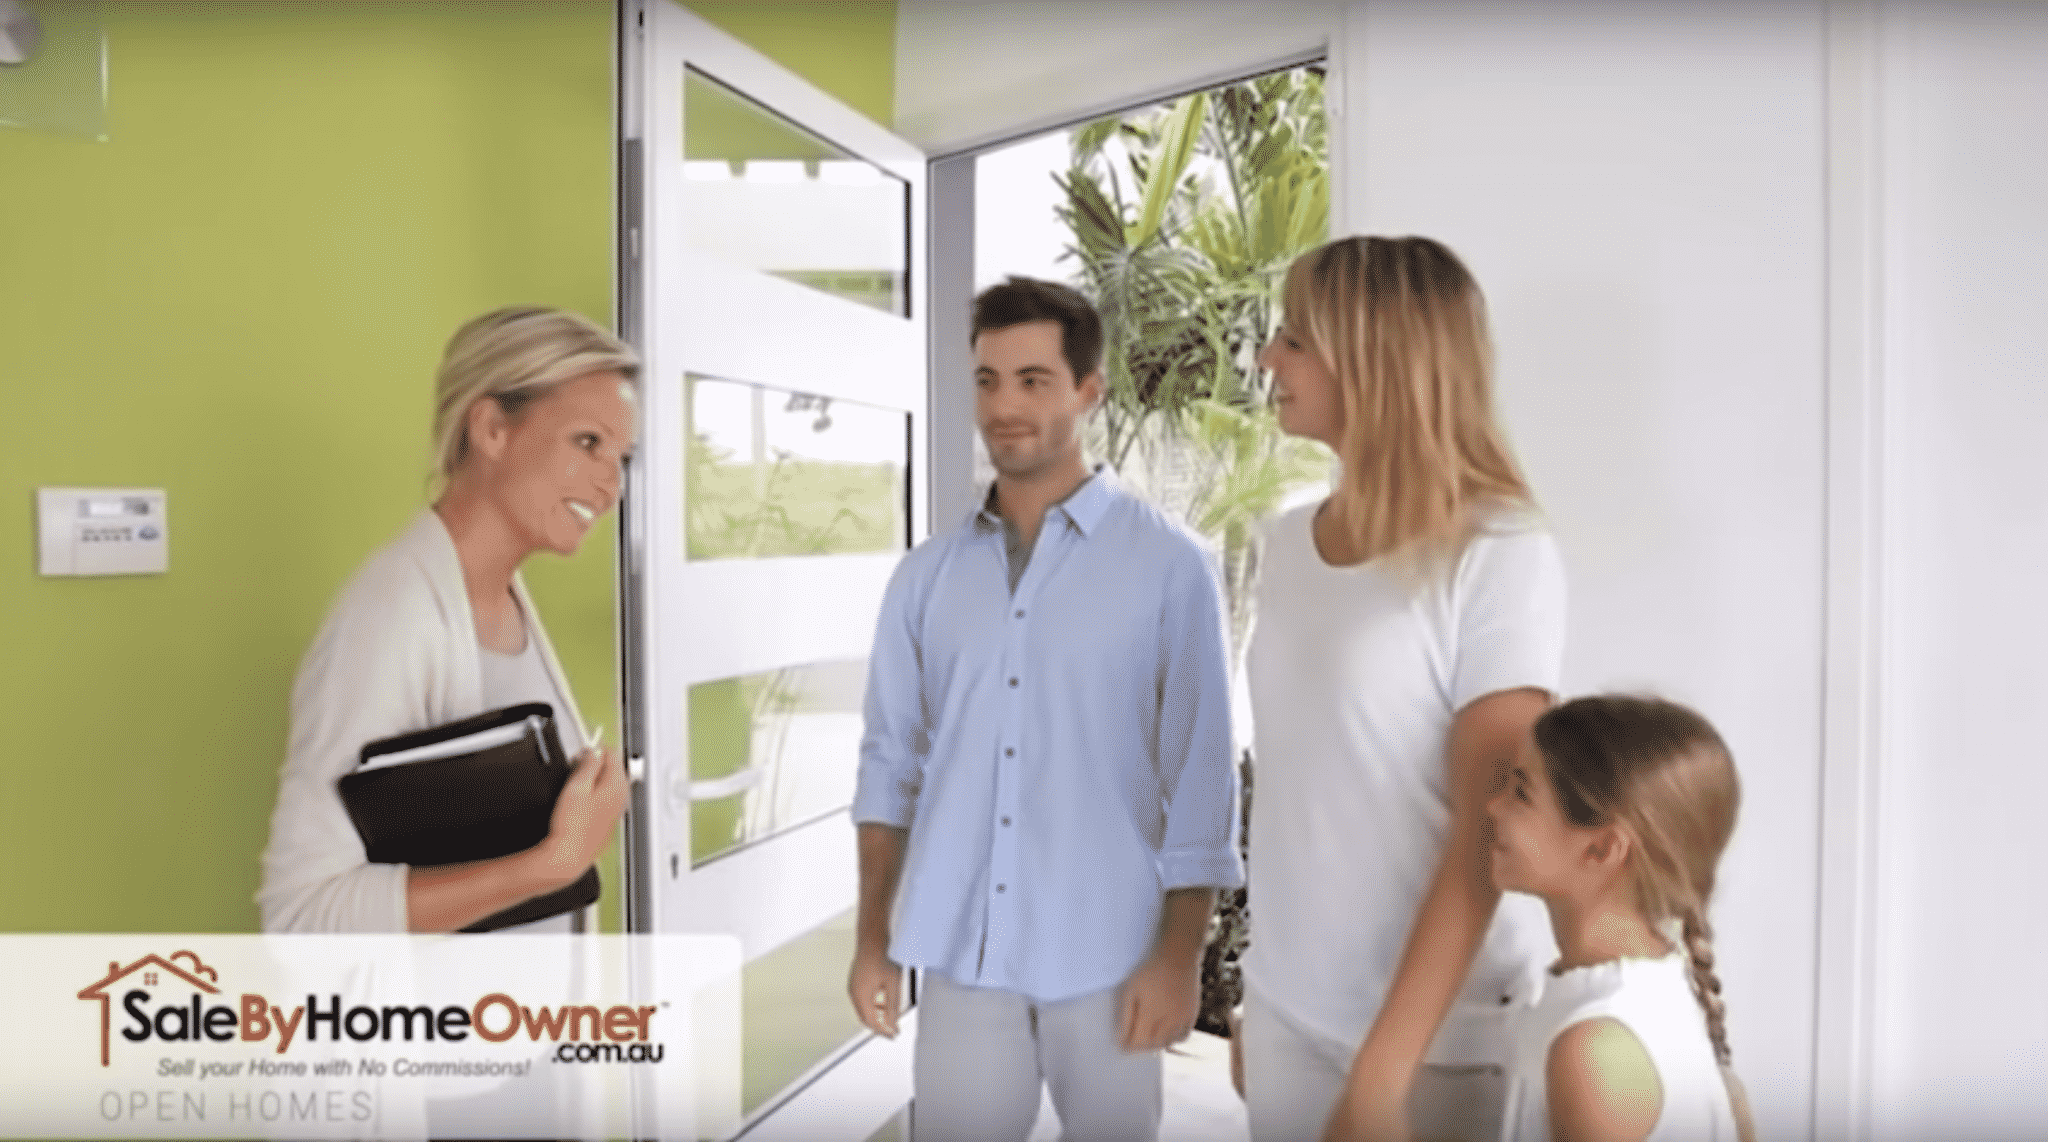 Sell your own home Privately - Sell without agents